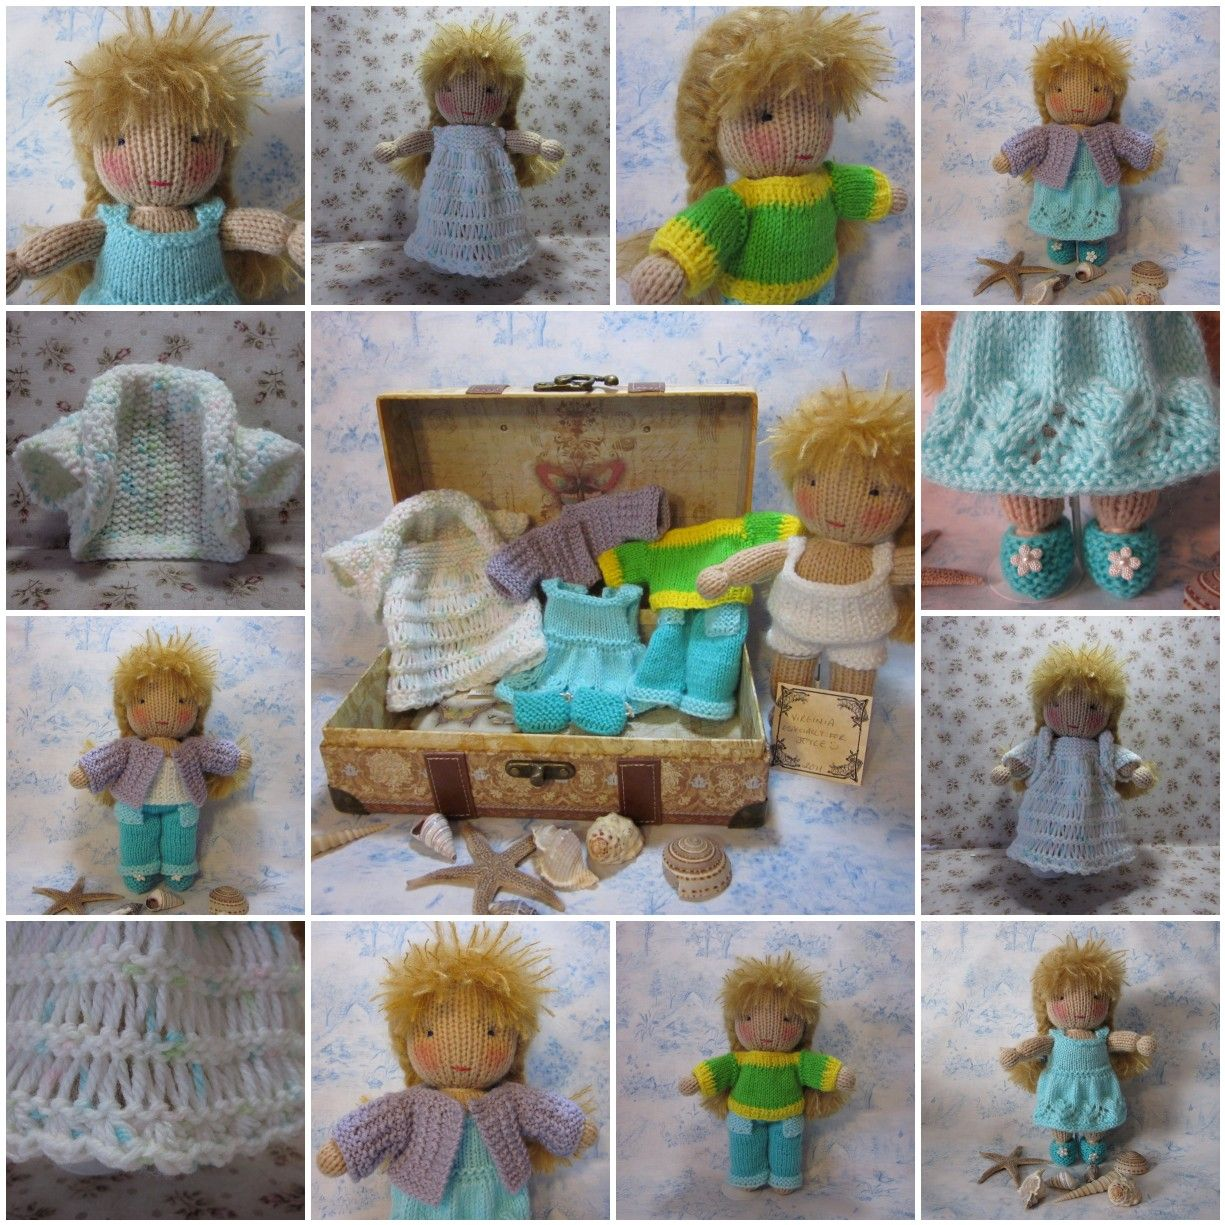 A place to share and discuss cloth and crochet dolls made by hand ...